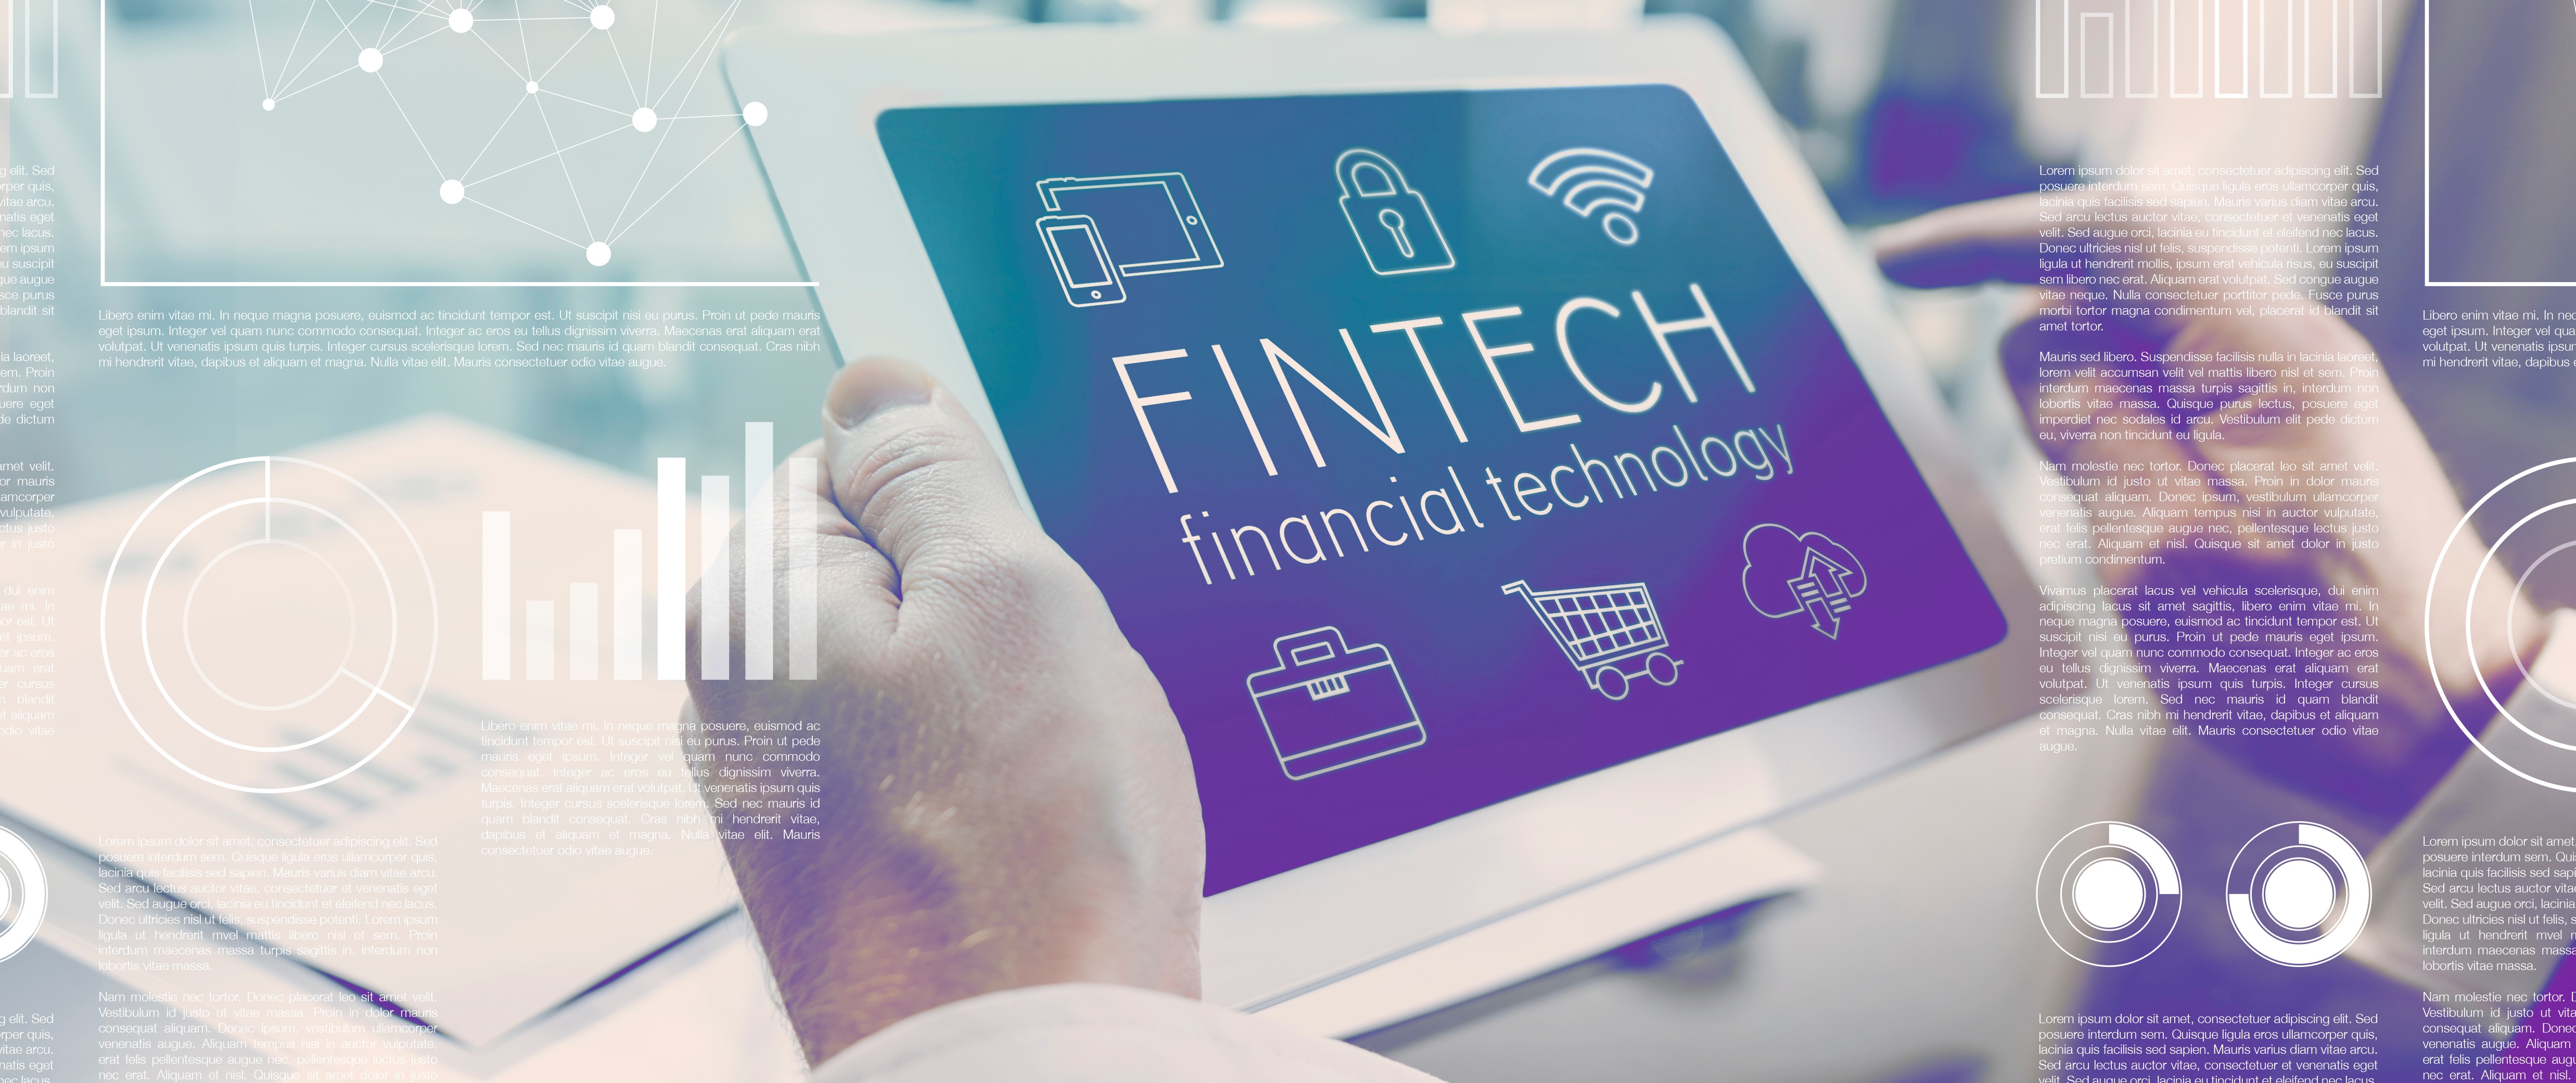 Future of financial technology internet interface concept